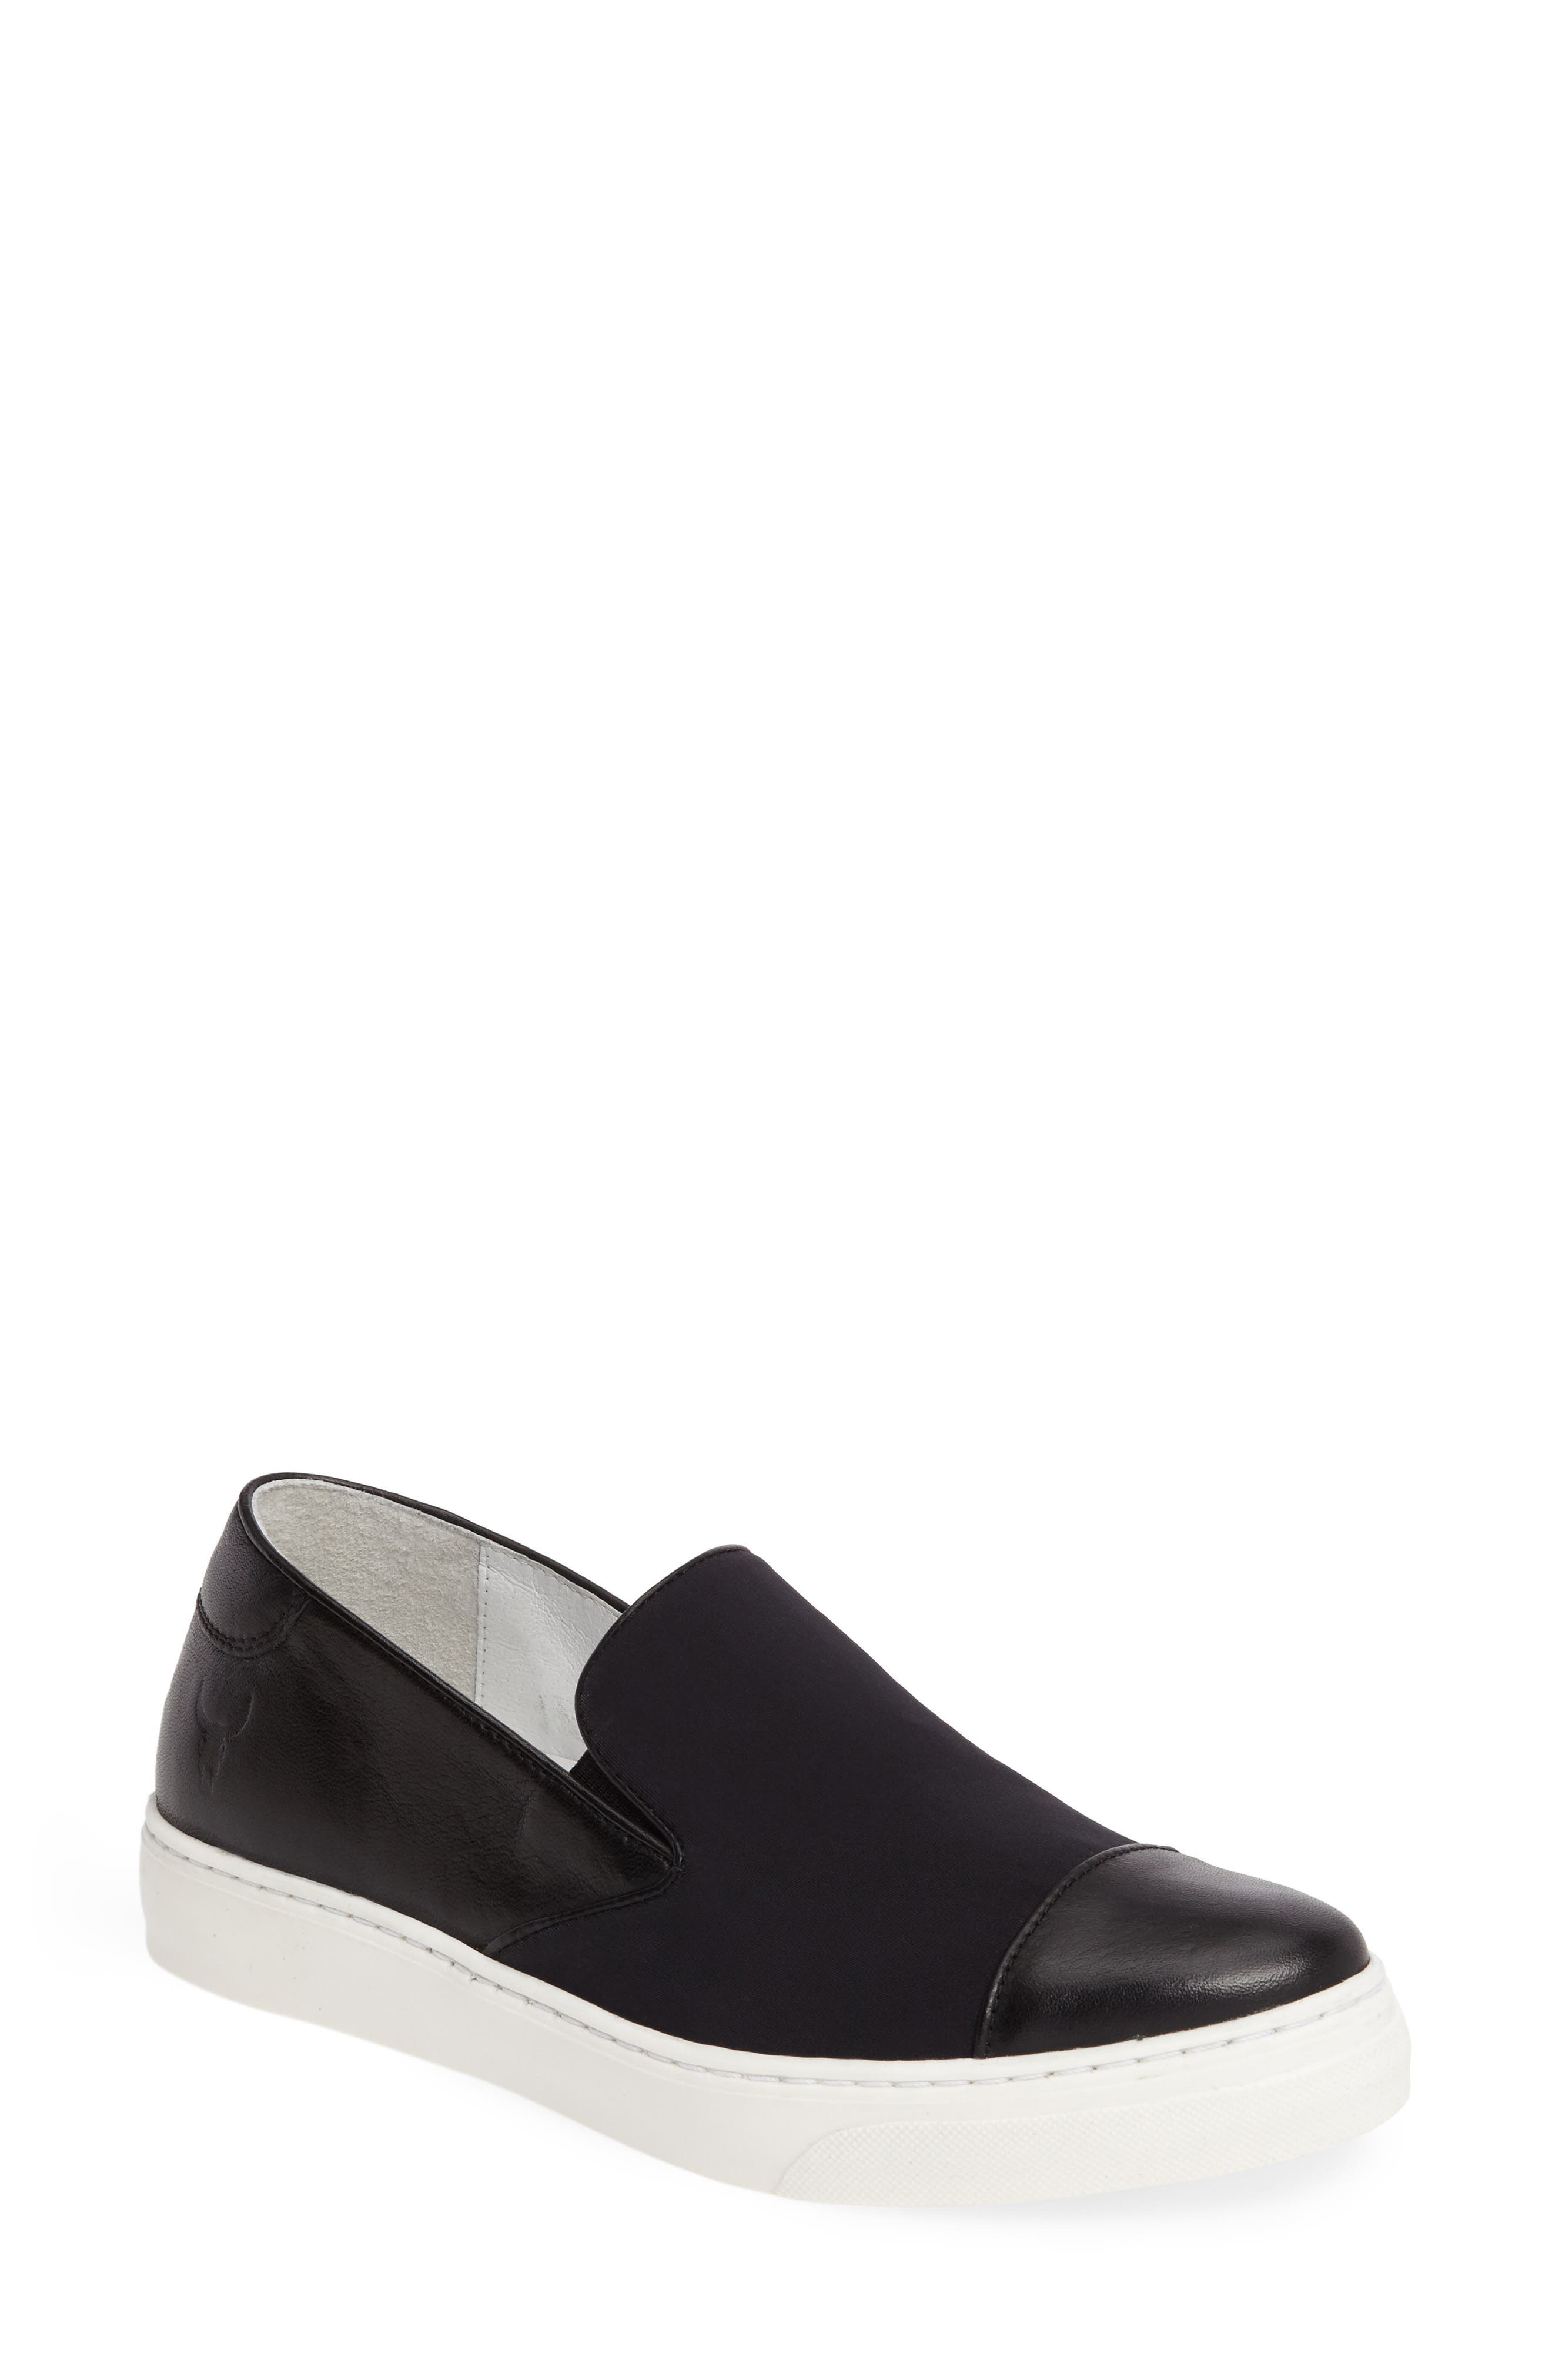 Main Image - Rudsak Betsy Slip-On Sneaker (Women)